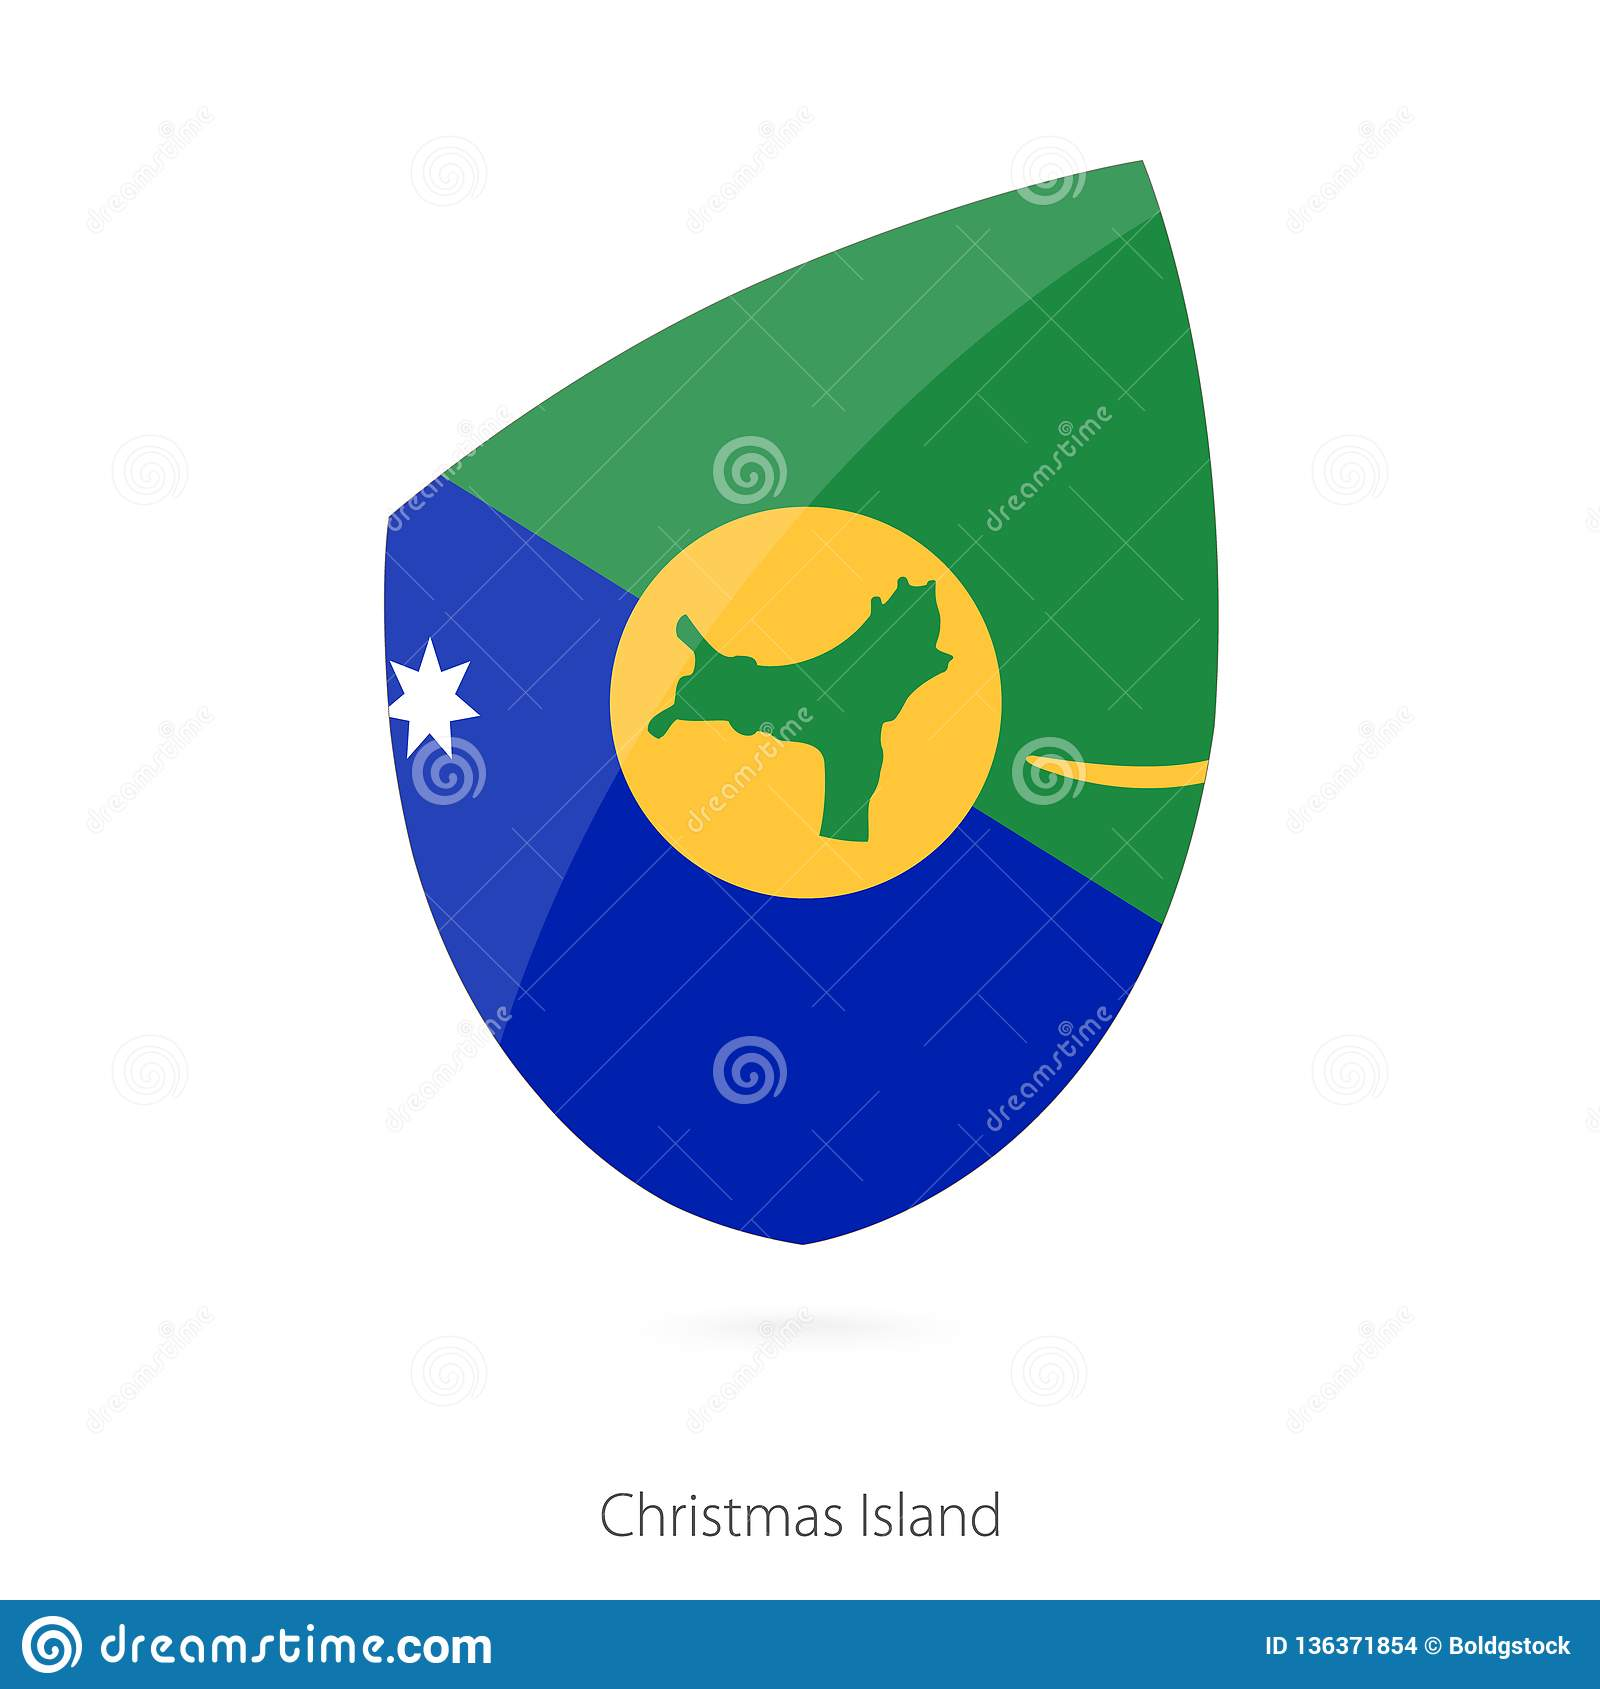 Flag of Christmas Island stock vector. Illustration of official - 136371854